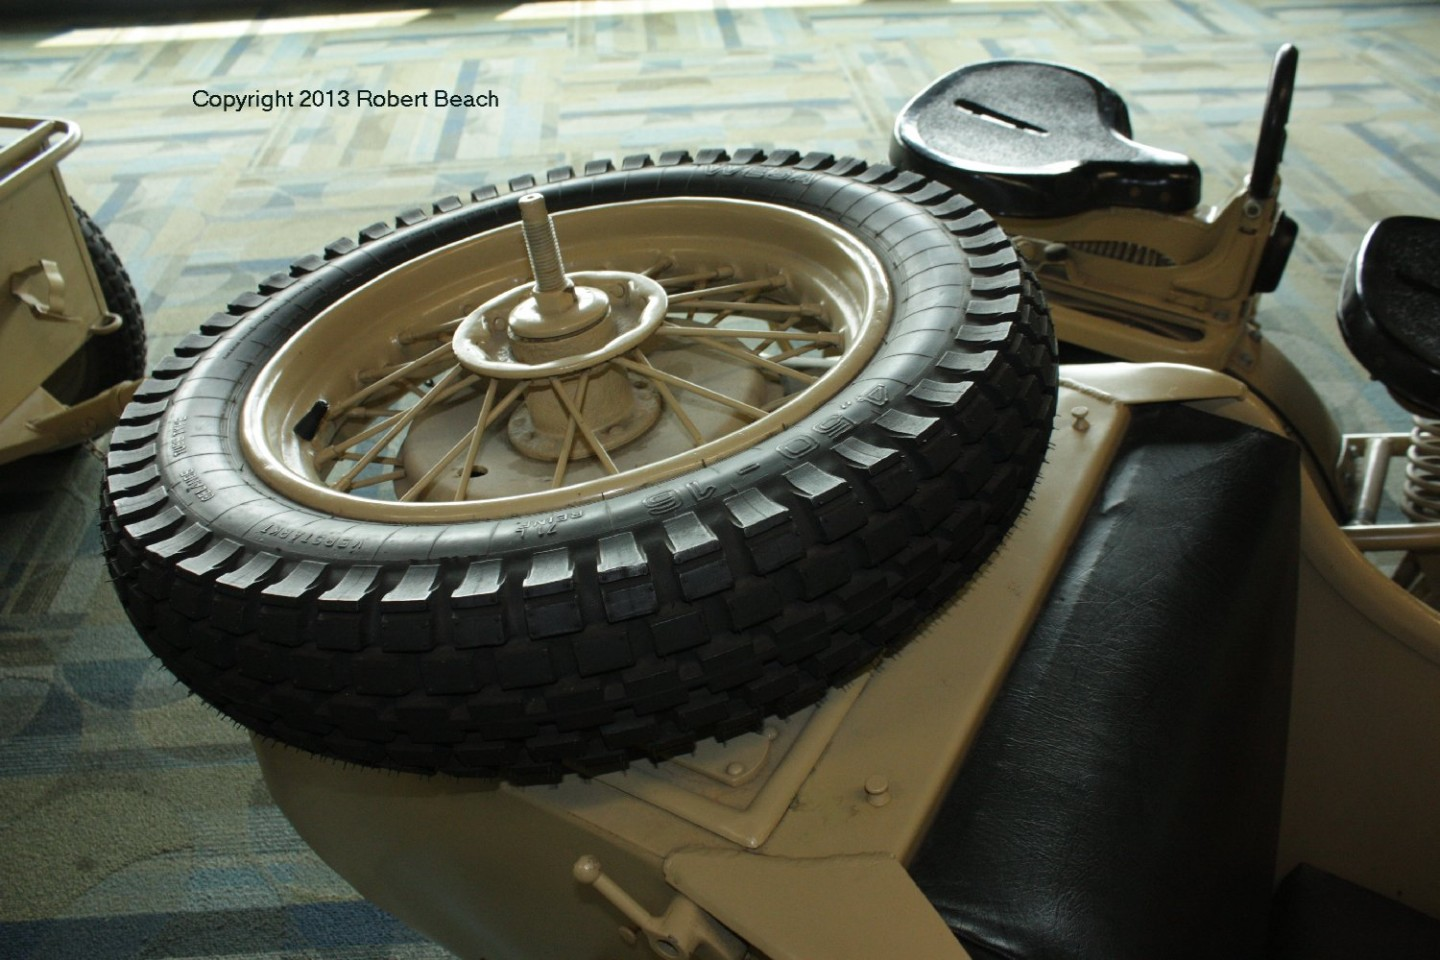 BMW_Mtrcycle_sidecar_car_spare tire_frm rt